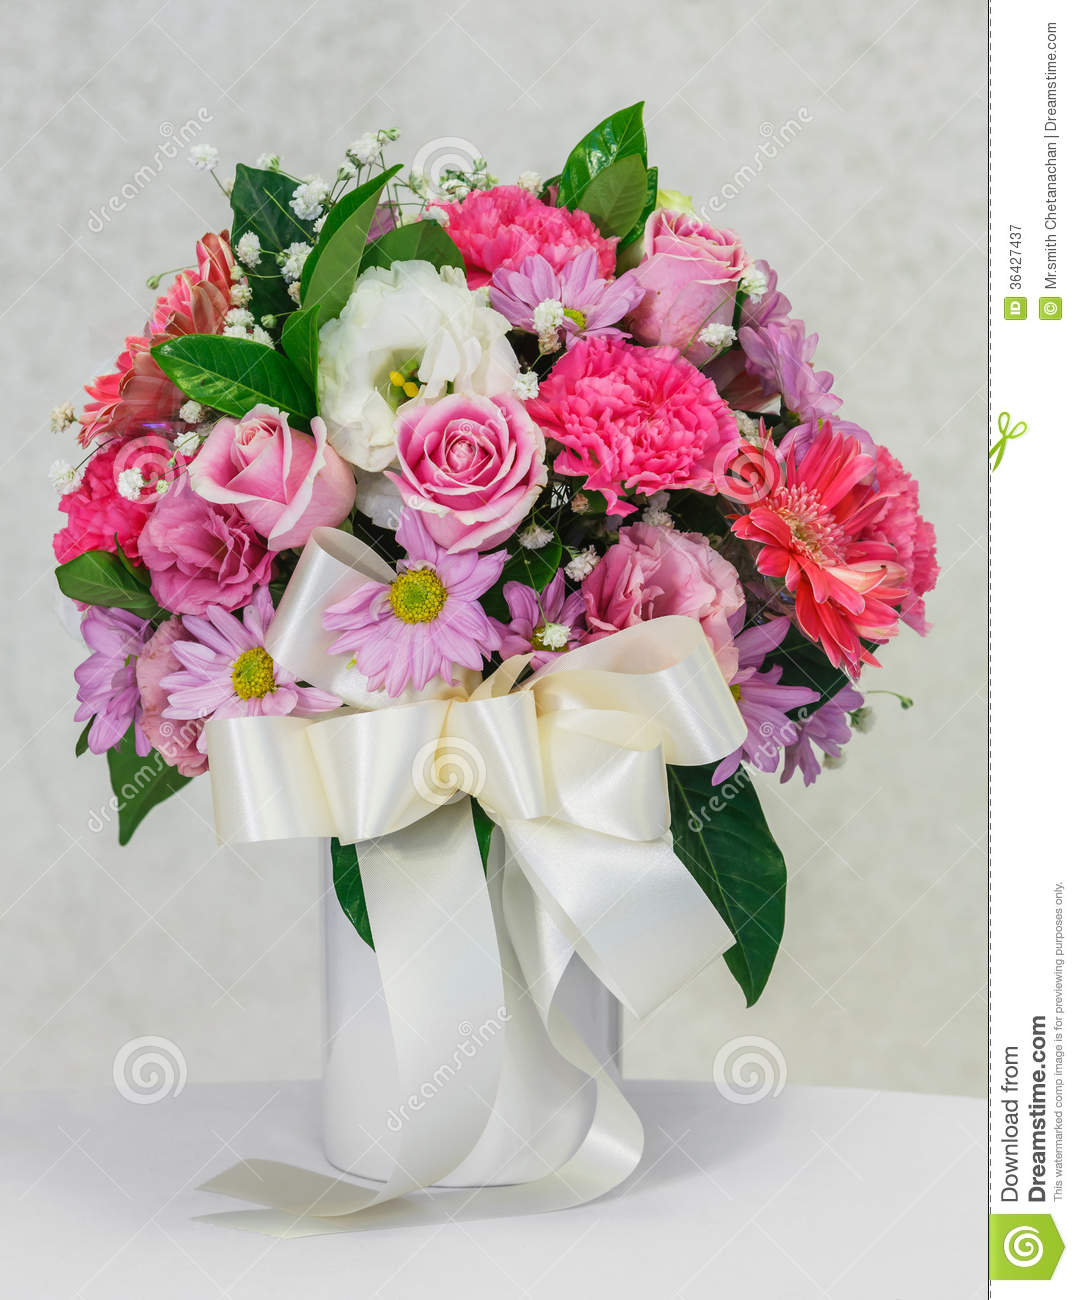 Flower bouquet in white ceramic vase stock image image for Bouquet de fleurs gerbera